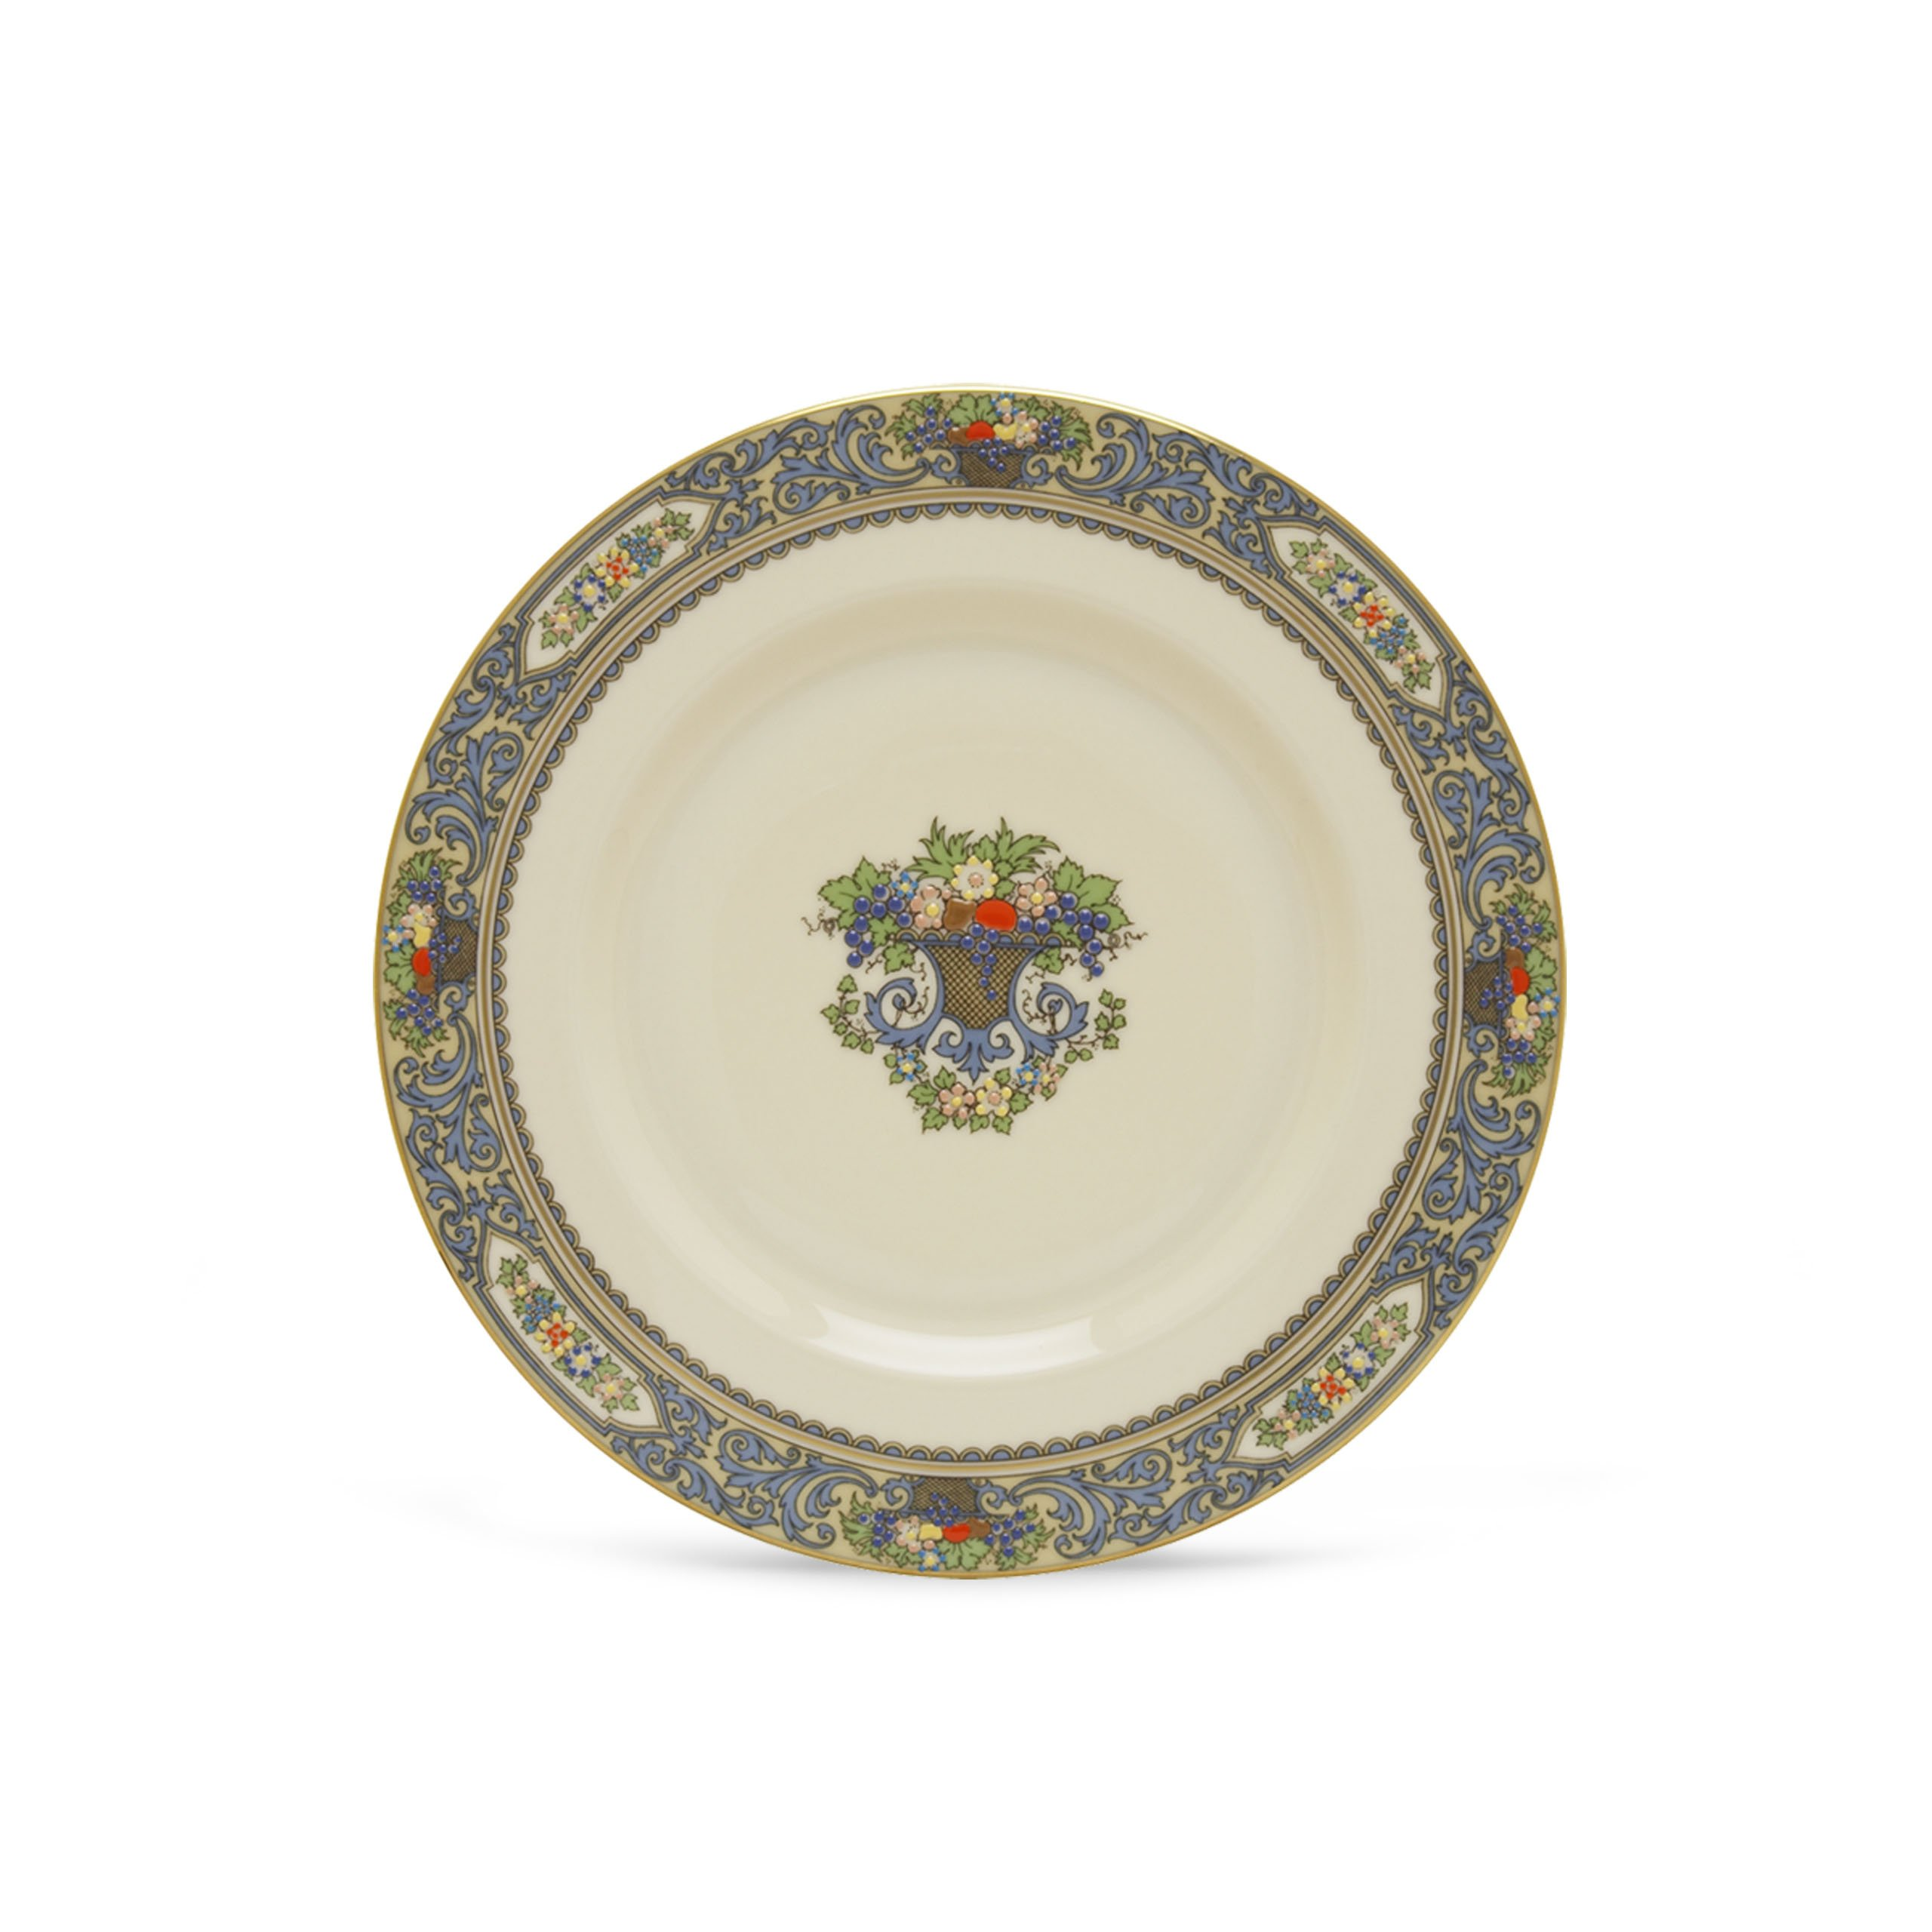 Lenox Autumn Banded Ivory China Butter Plate